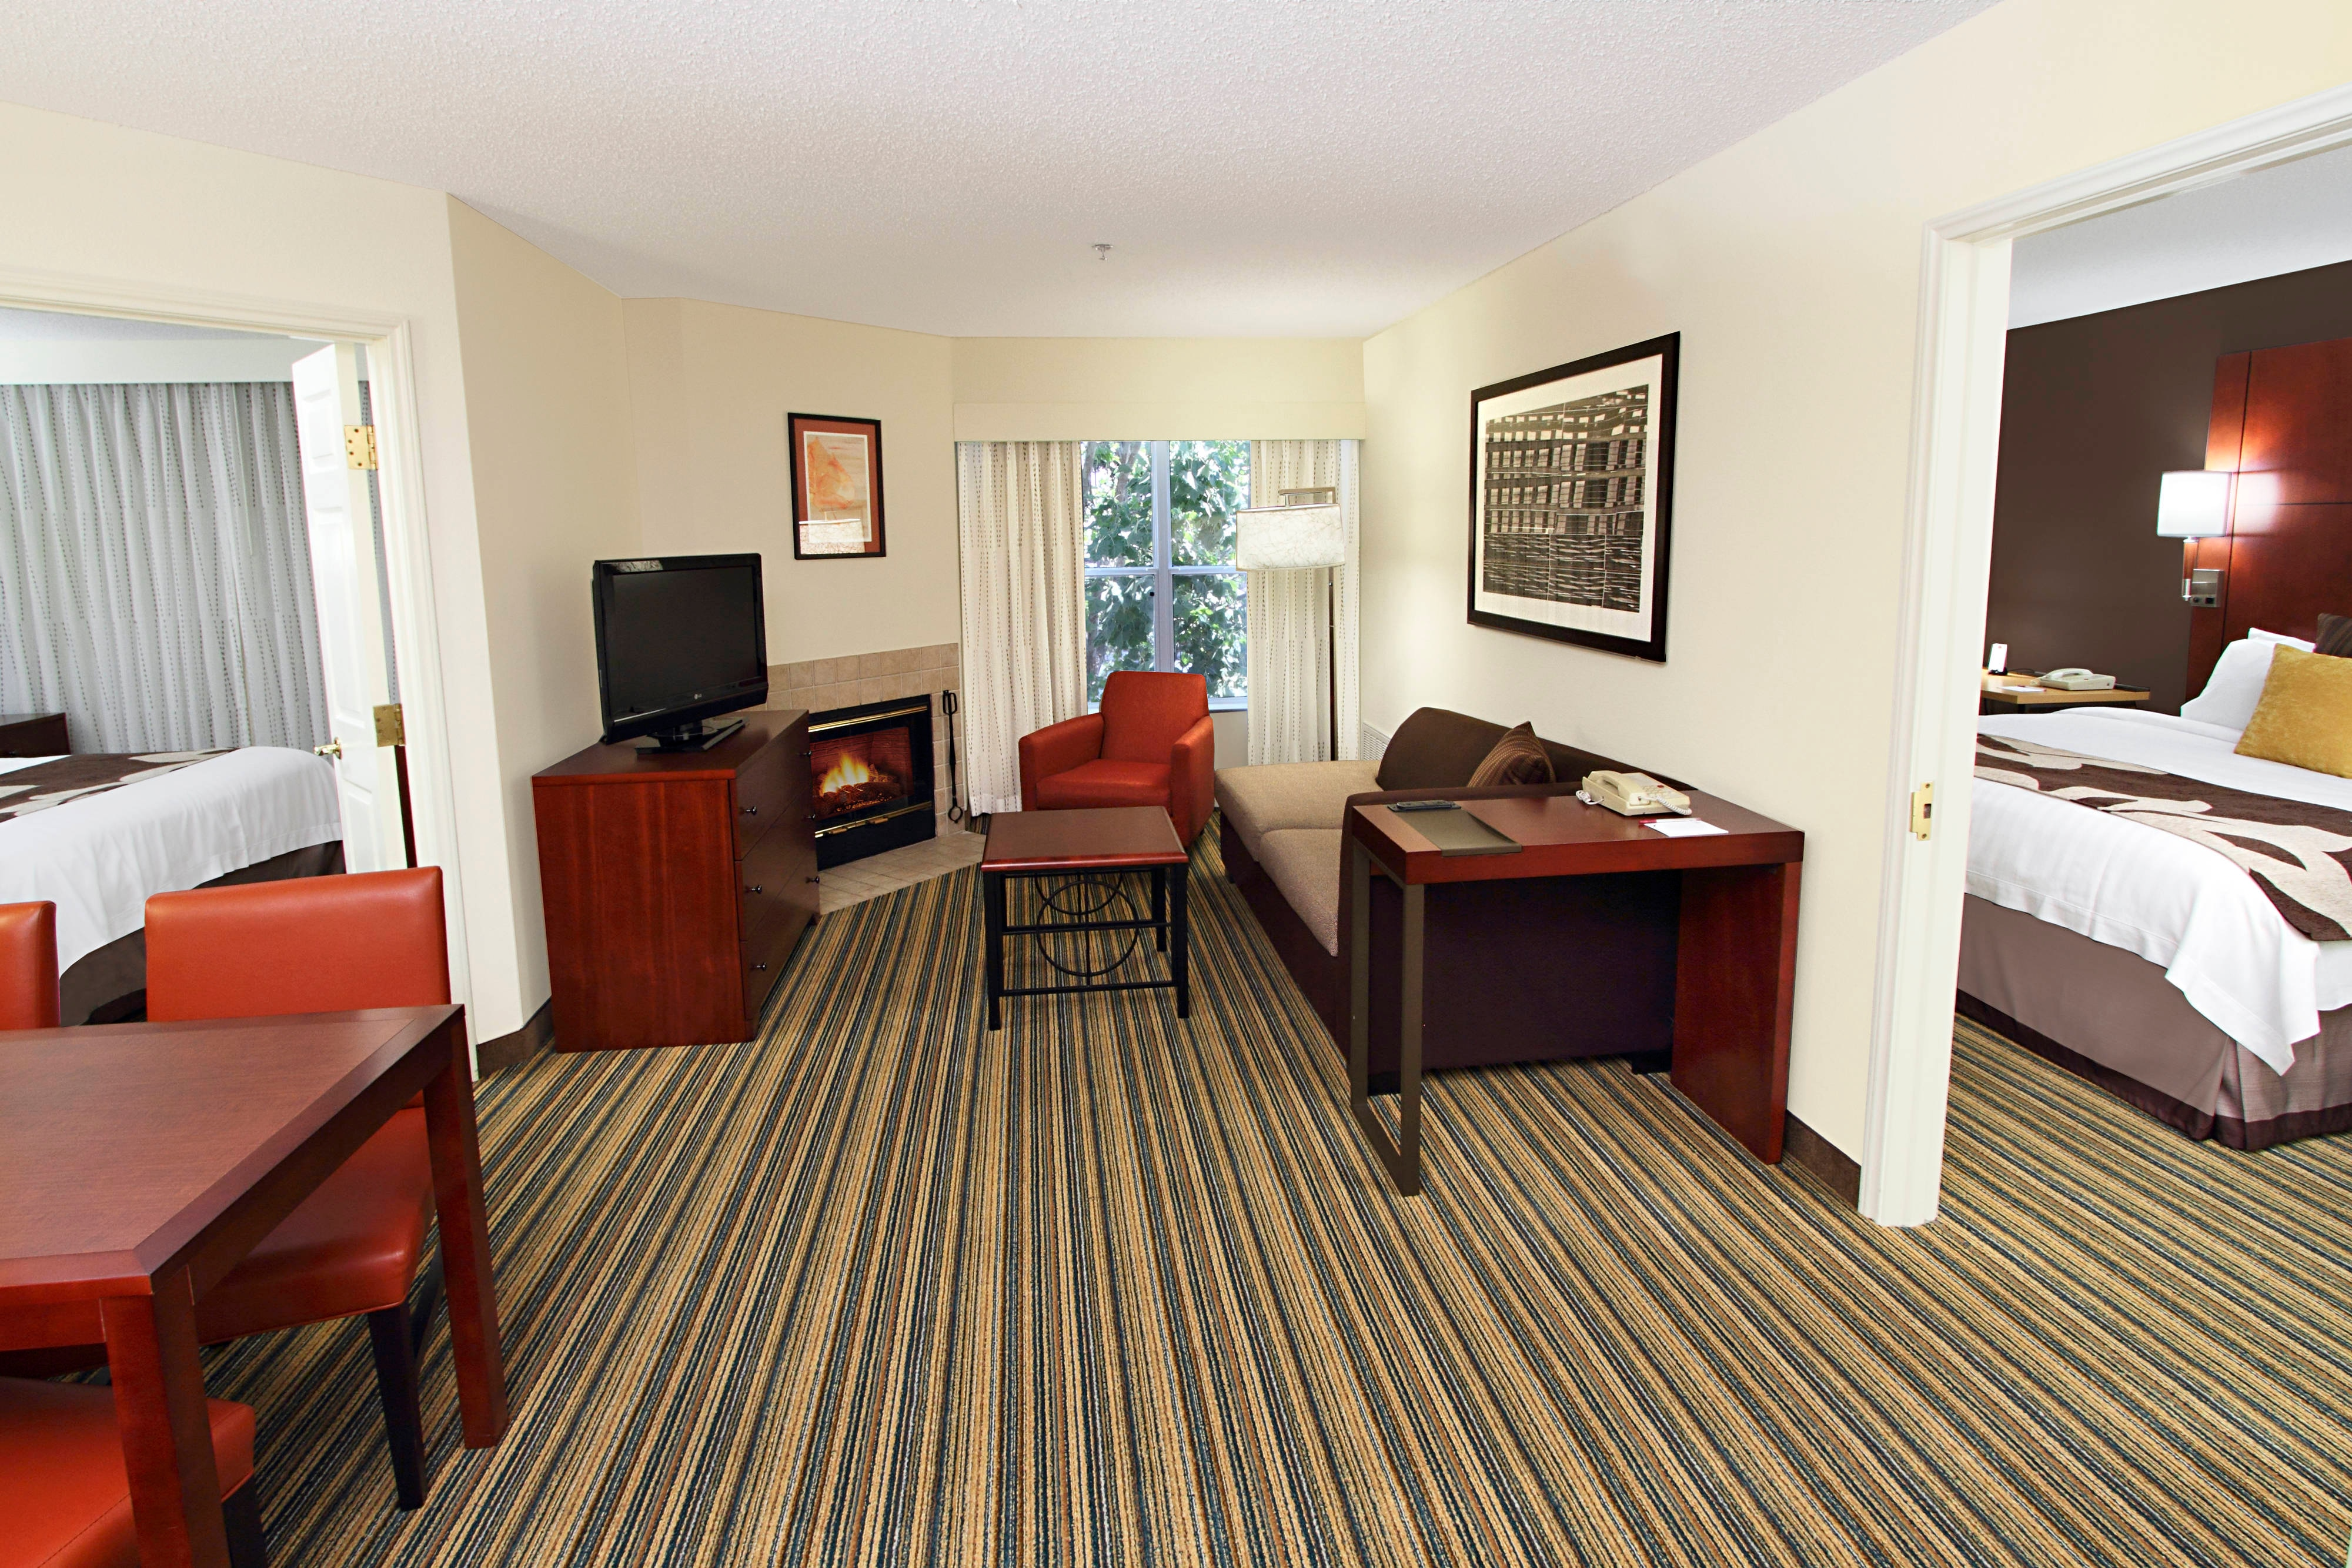 clsc suite newly and mcosw in bedroom at hotel orleans hotels fl seaworld studio hor renovated inn orlando rooms new suites residence